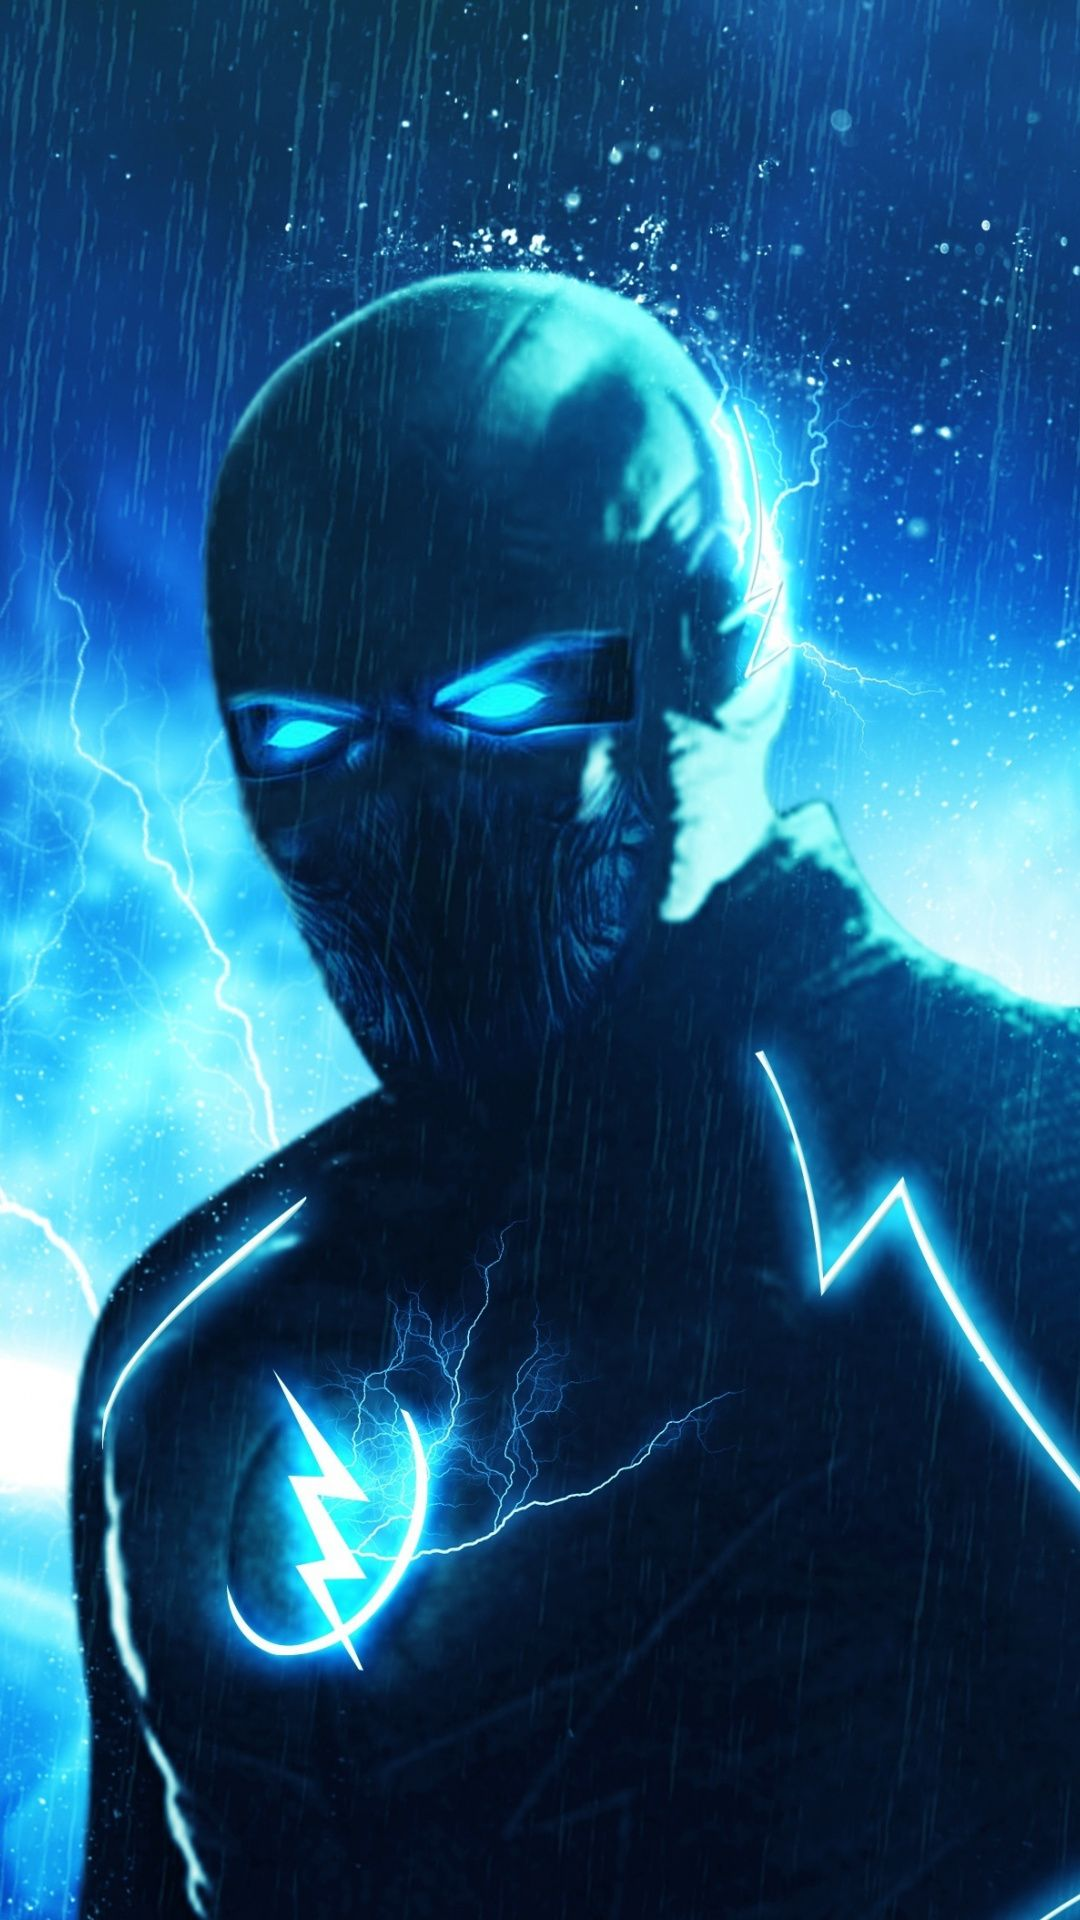 Zoom, villain, dc comics, 1080x1920 wallpaper O flash